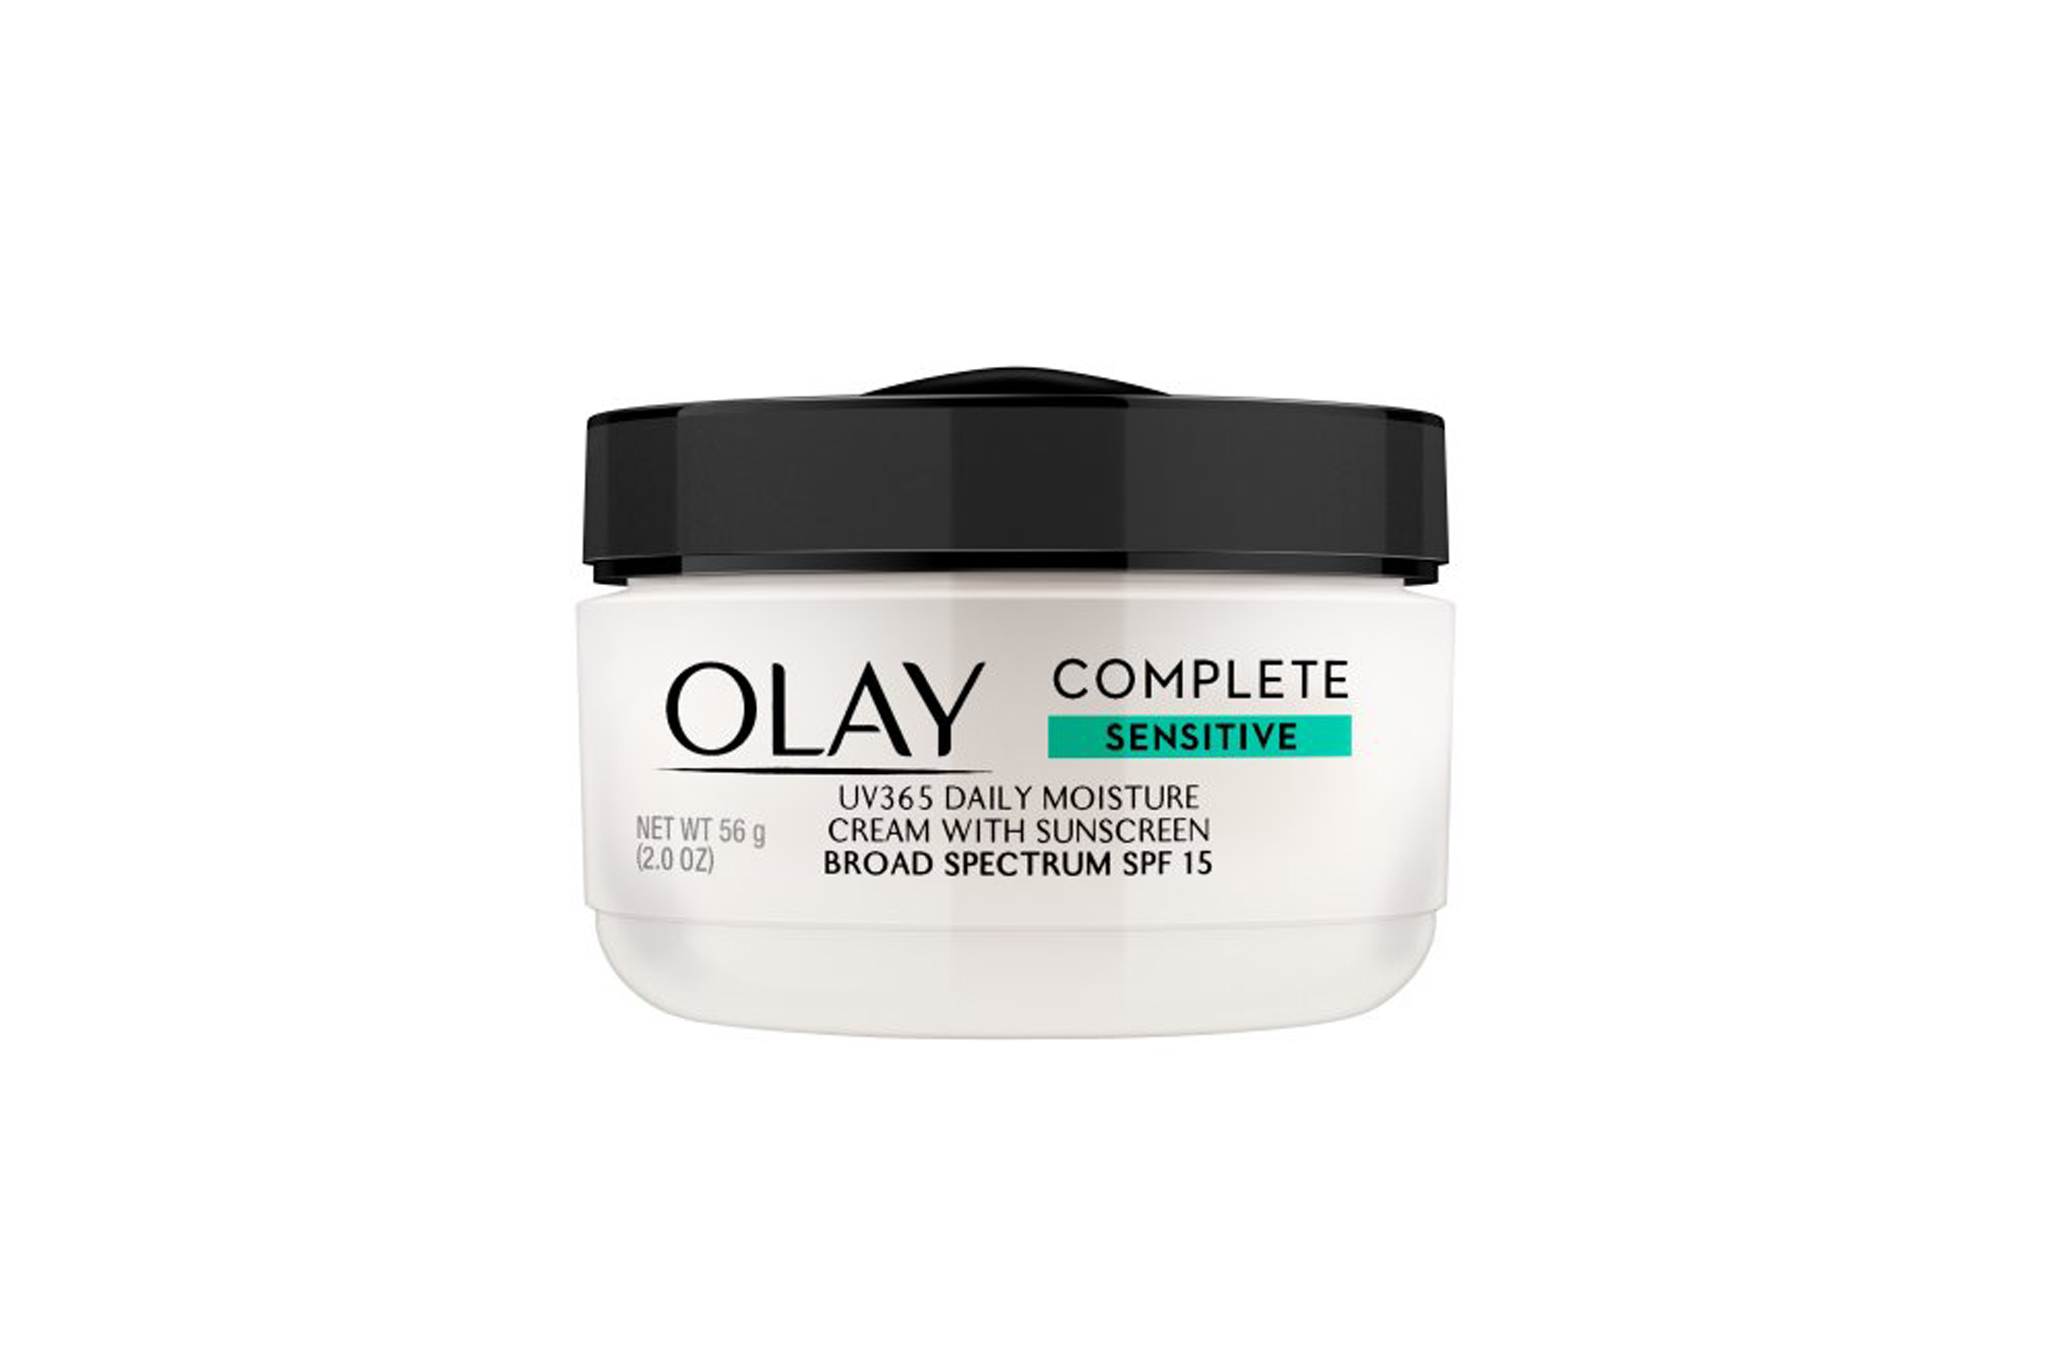 Olay Complete Cream All Day Moisturizer with SPF 15